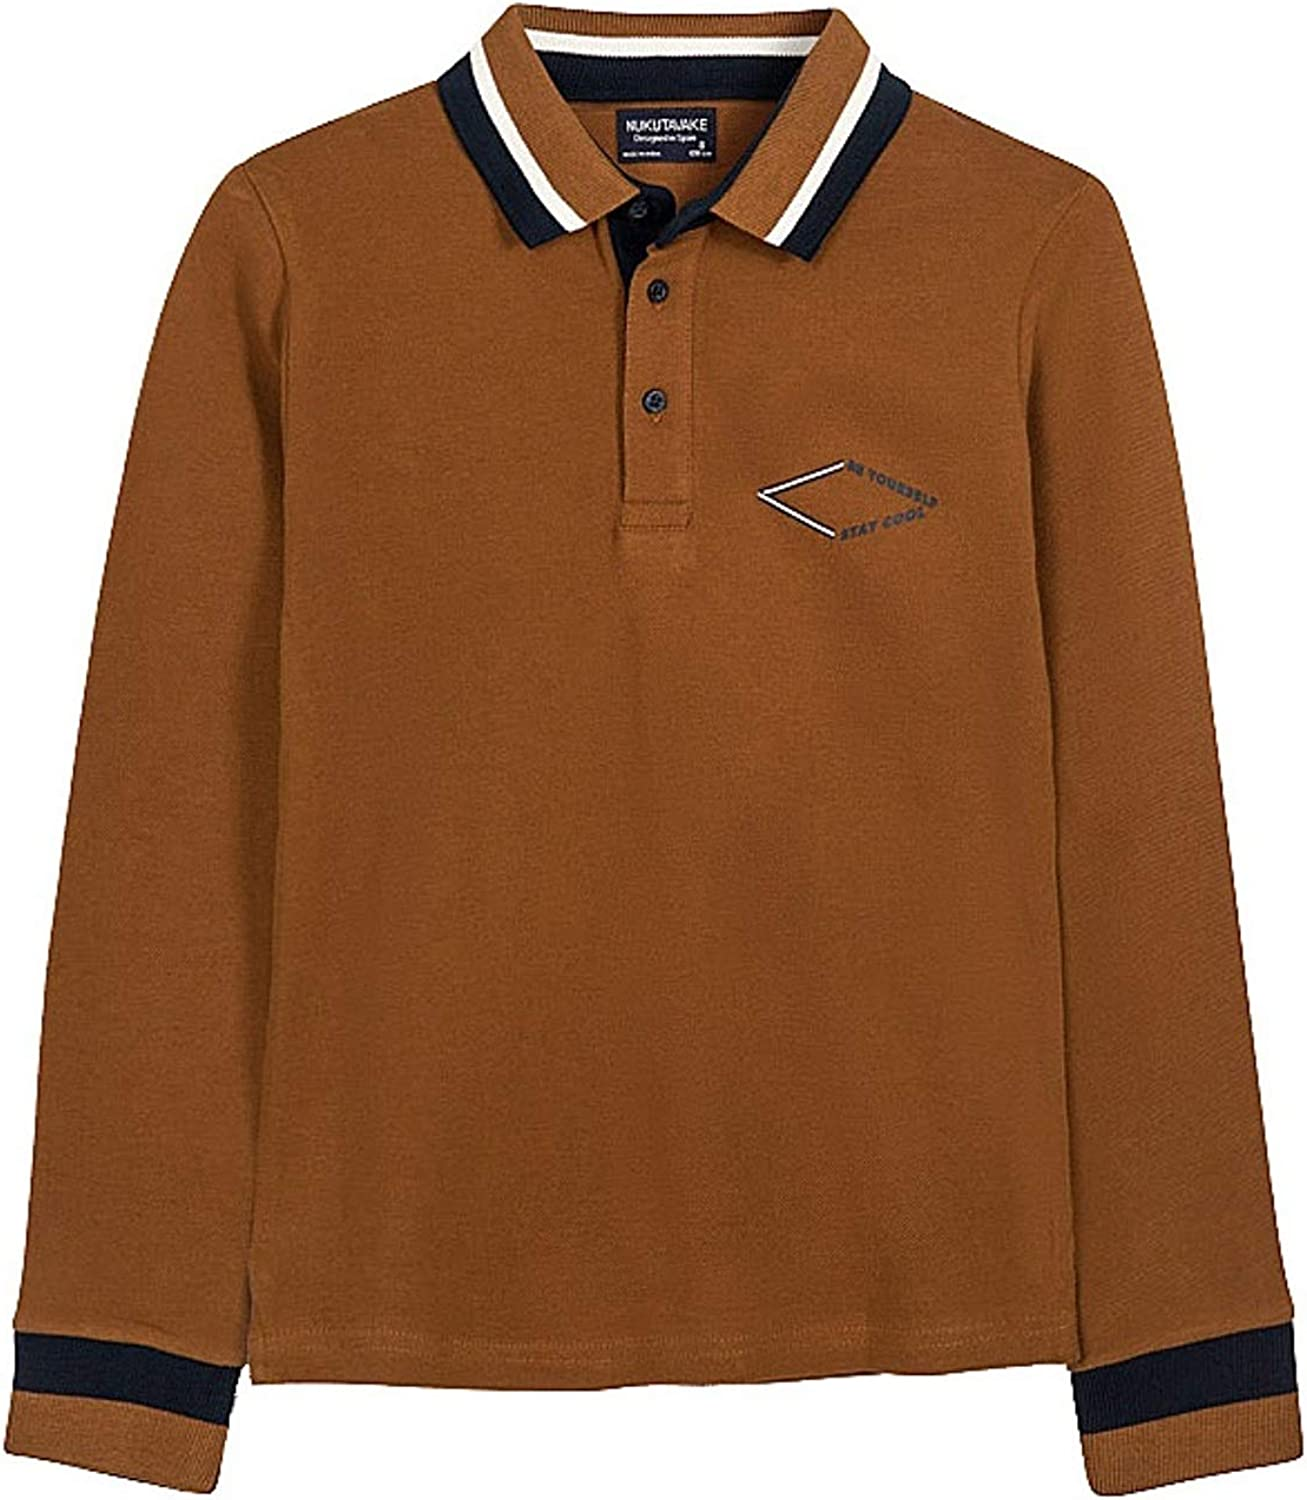 Mayoral - Polo with Back Design L/s for Boys - 7123, Brown